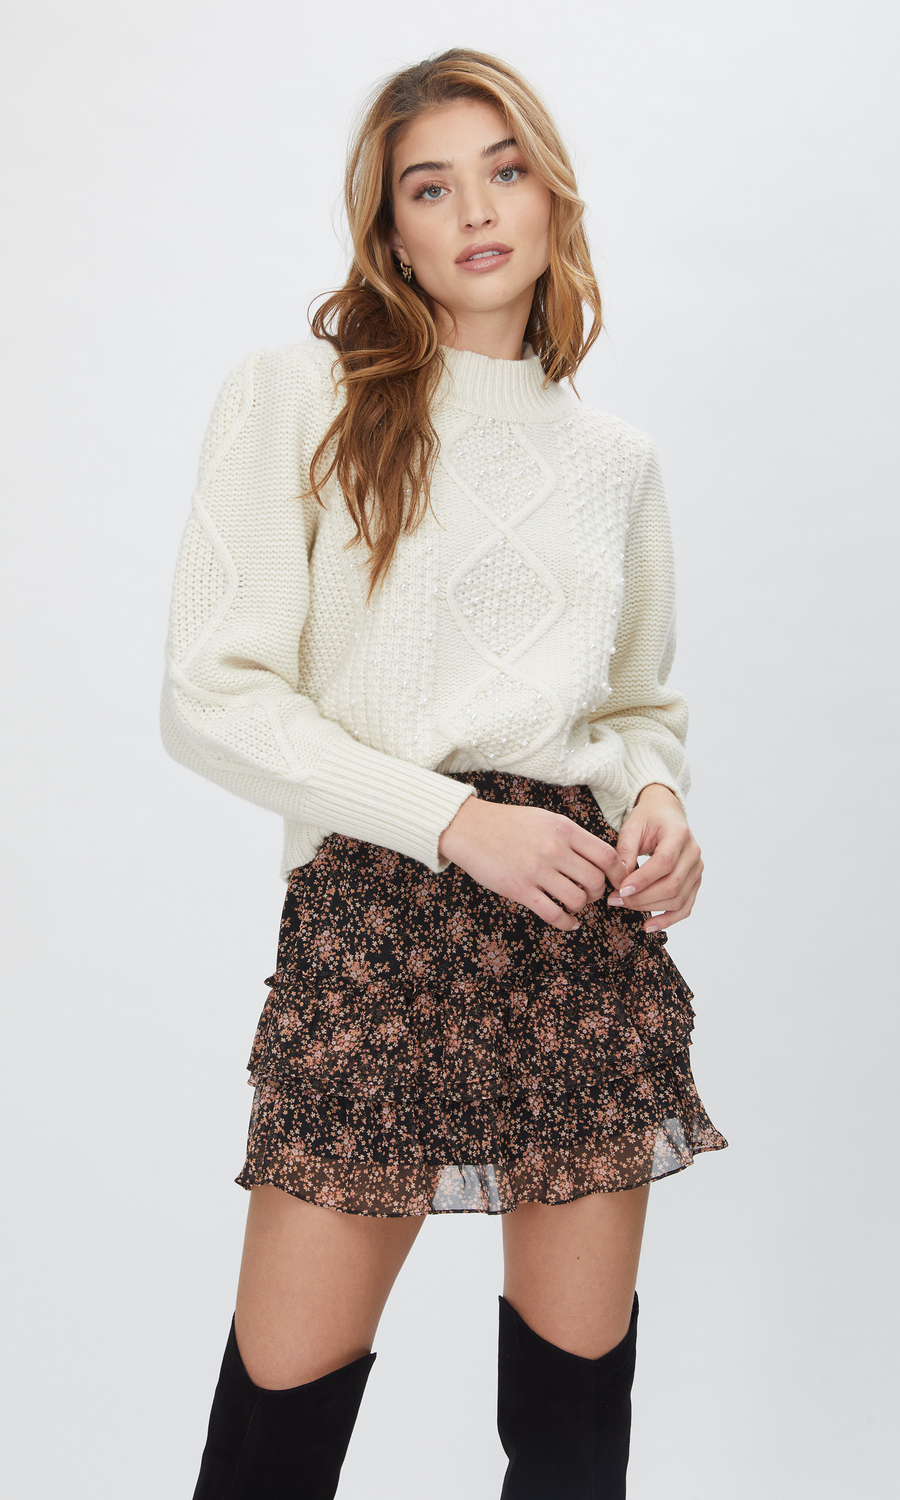 Aspen Pearl Cable Sweater